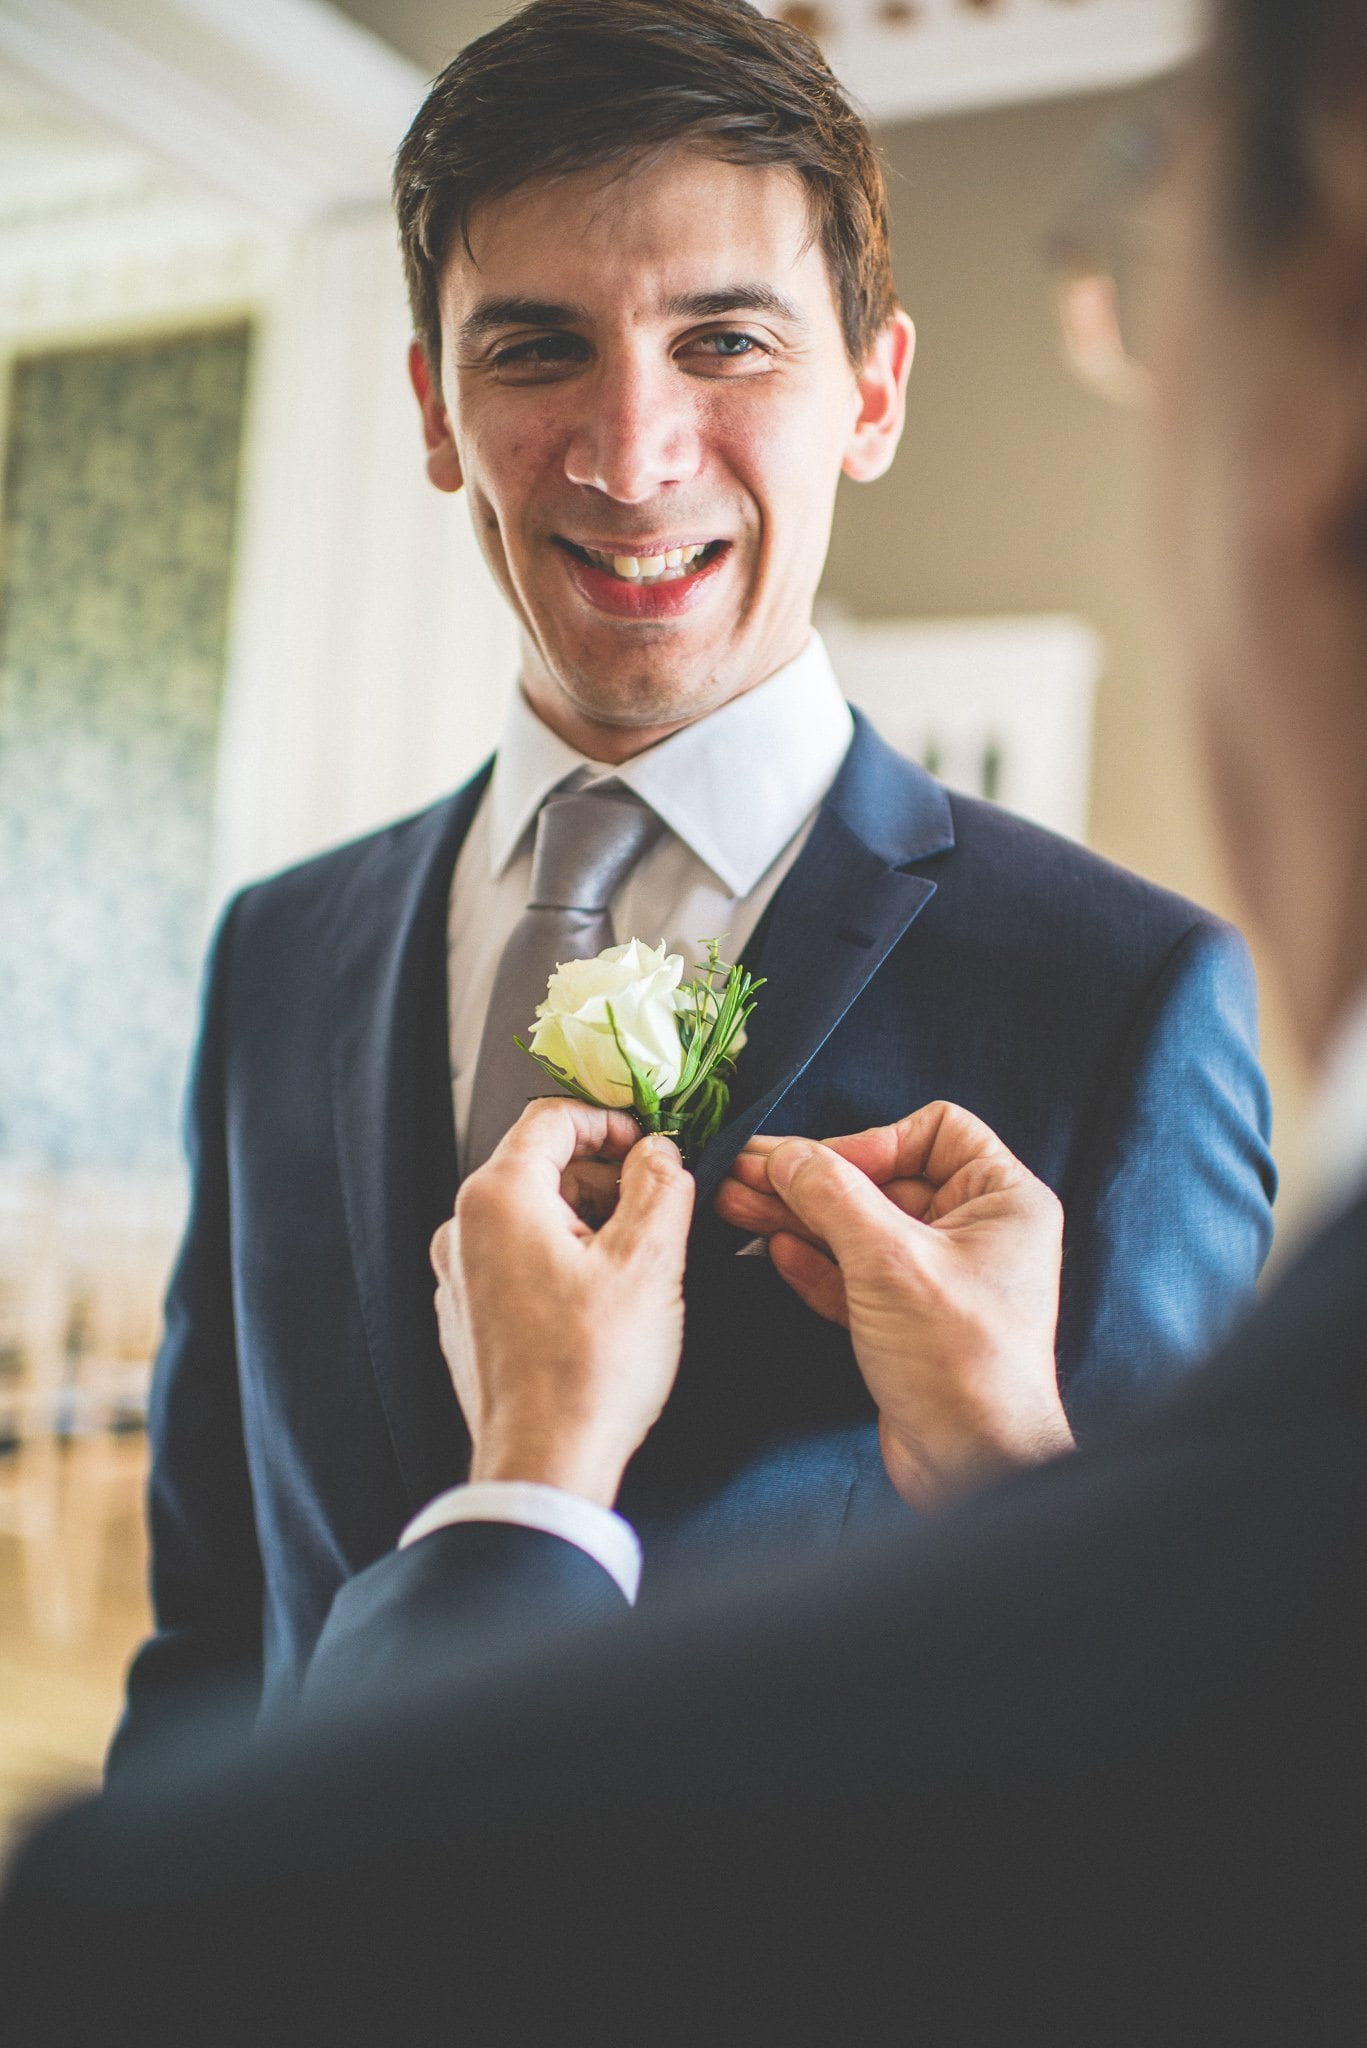 A groomsman fastens Andy's buttonhole to his navy suit